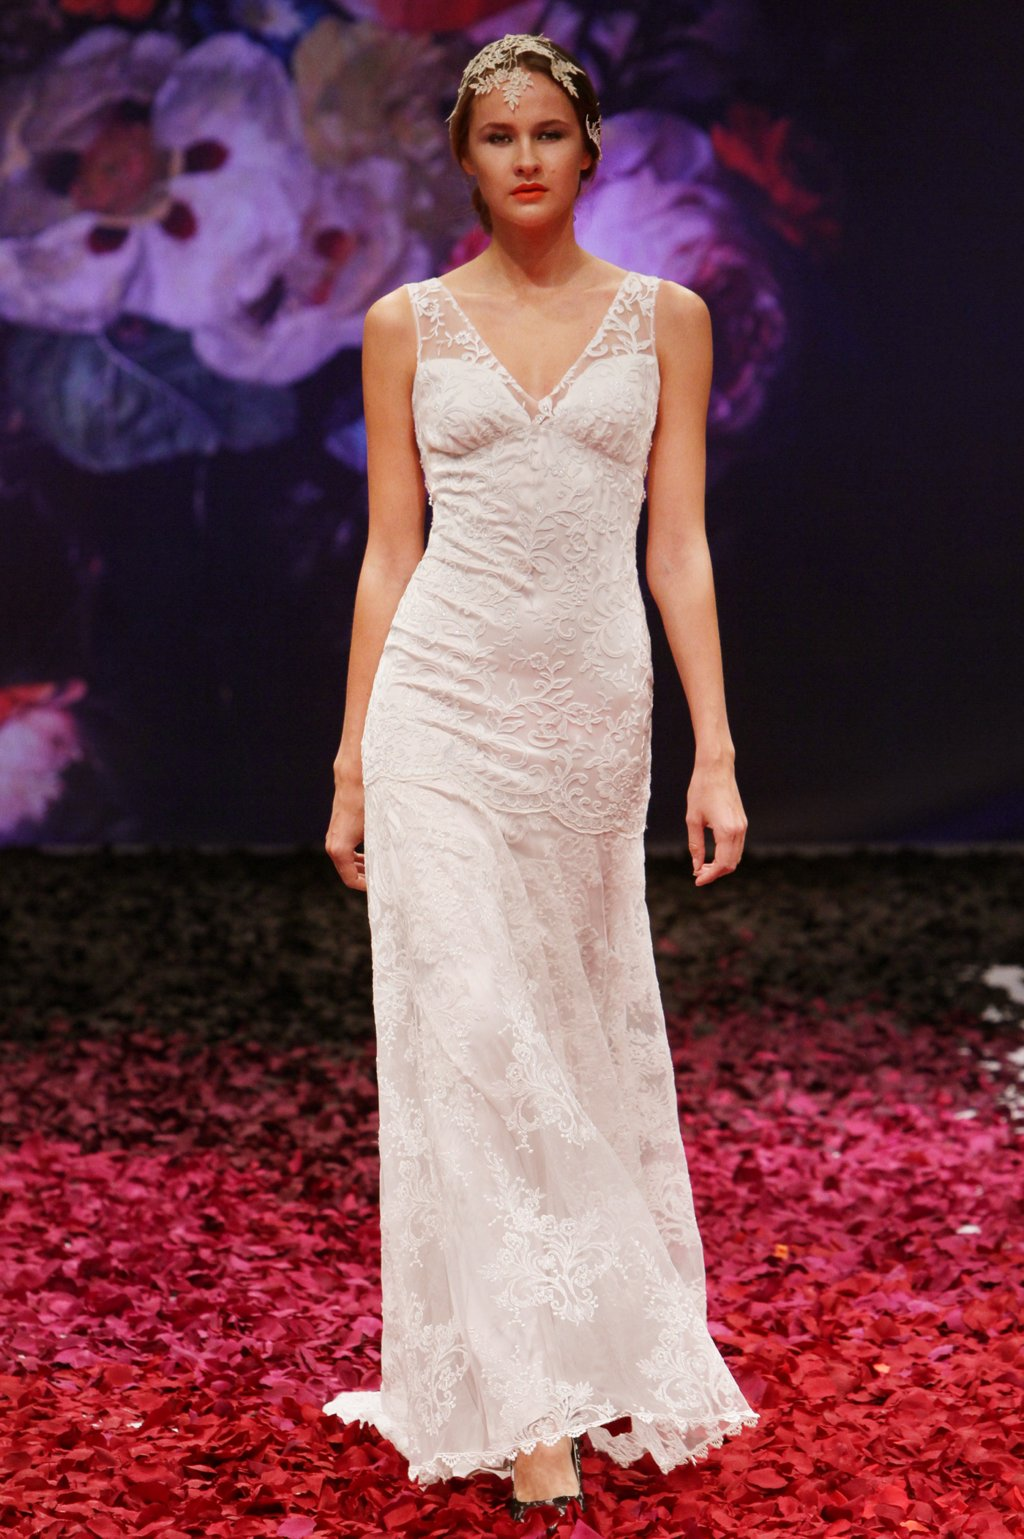 Iris-wedding-dress-by-claire-pettibone-2014-still-life-bridal-collection.full